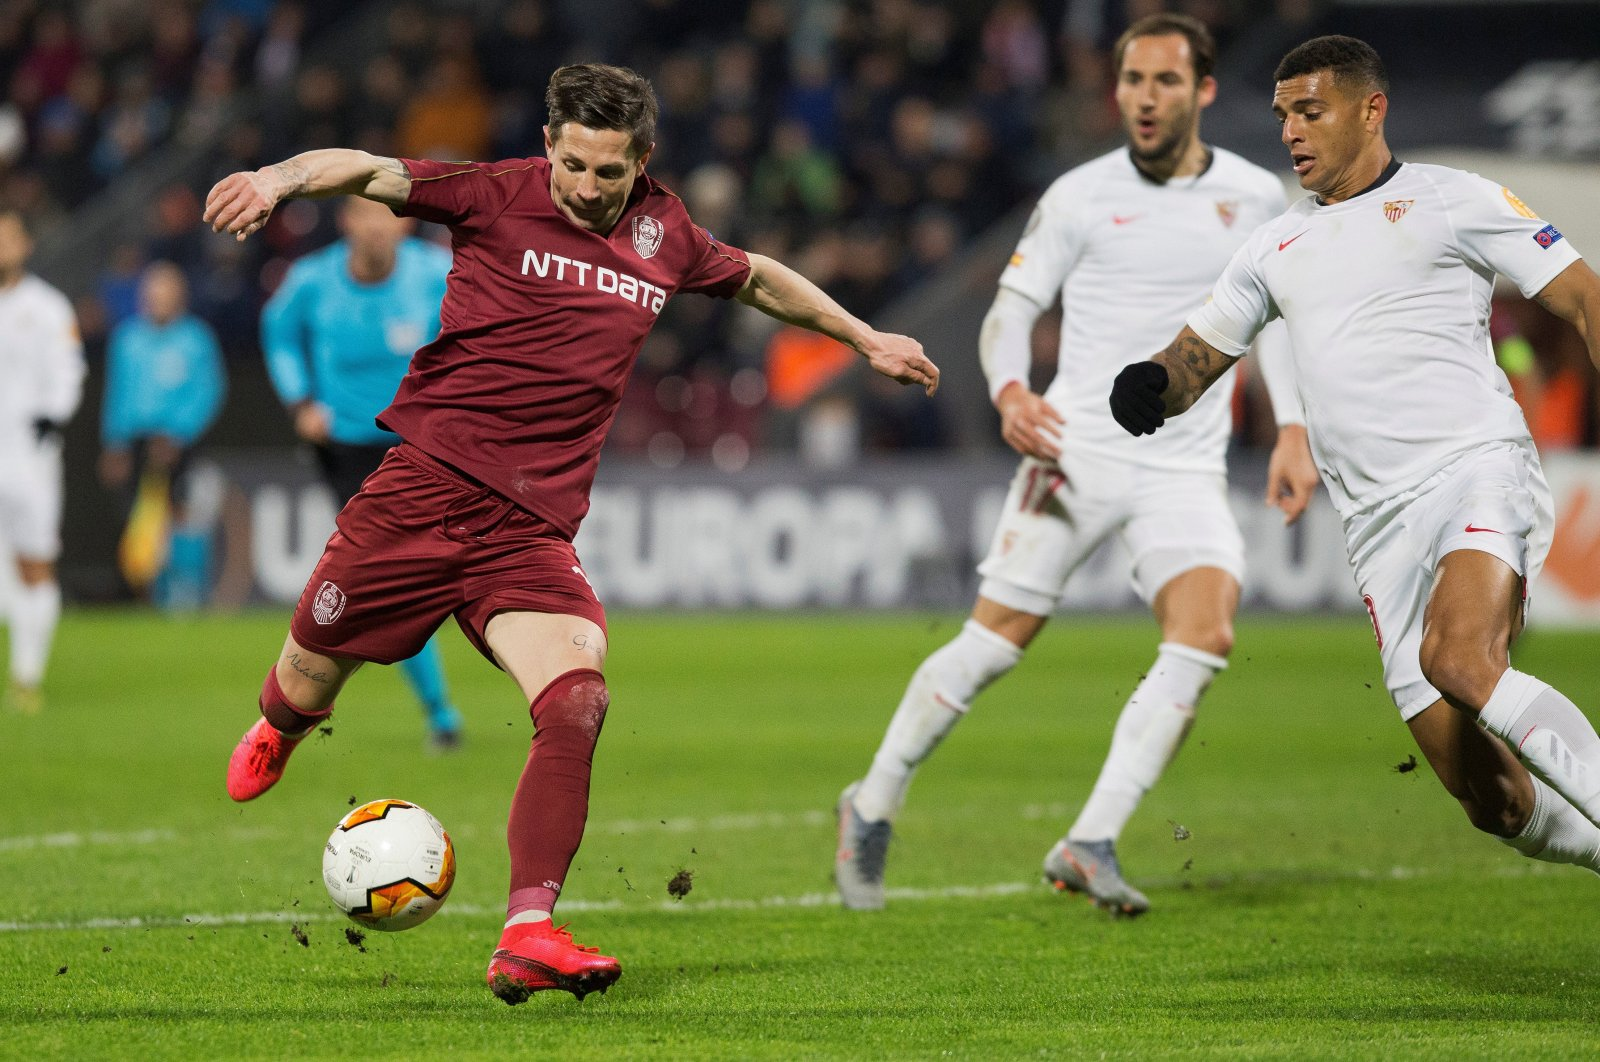 CFR Cluj's Ciprian Deac shoots at goal in Europa League Round of 32 First Leg match against Sevilla at Dr. Constantin Radulescu Stadium, Cluj-Napoca, Romania, Feb. 20, 2020. (Reuters Photo)